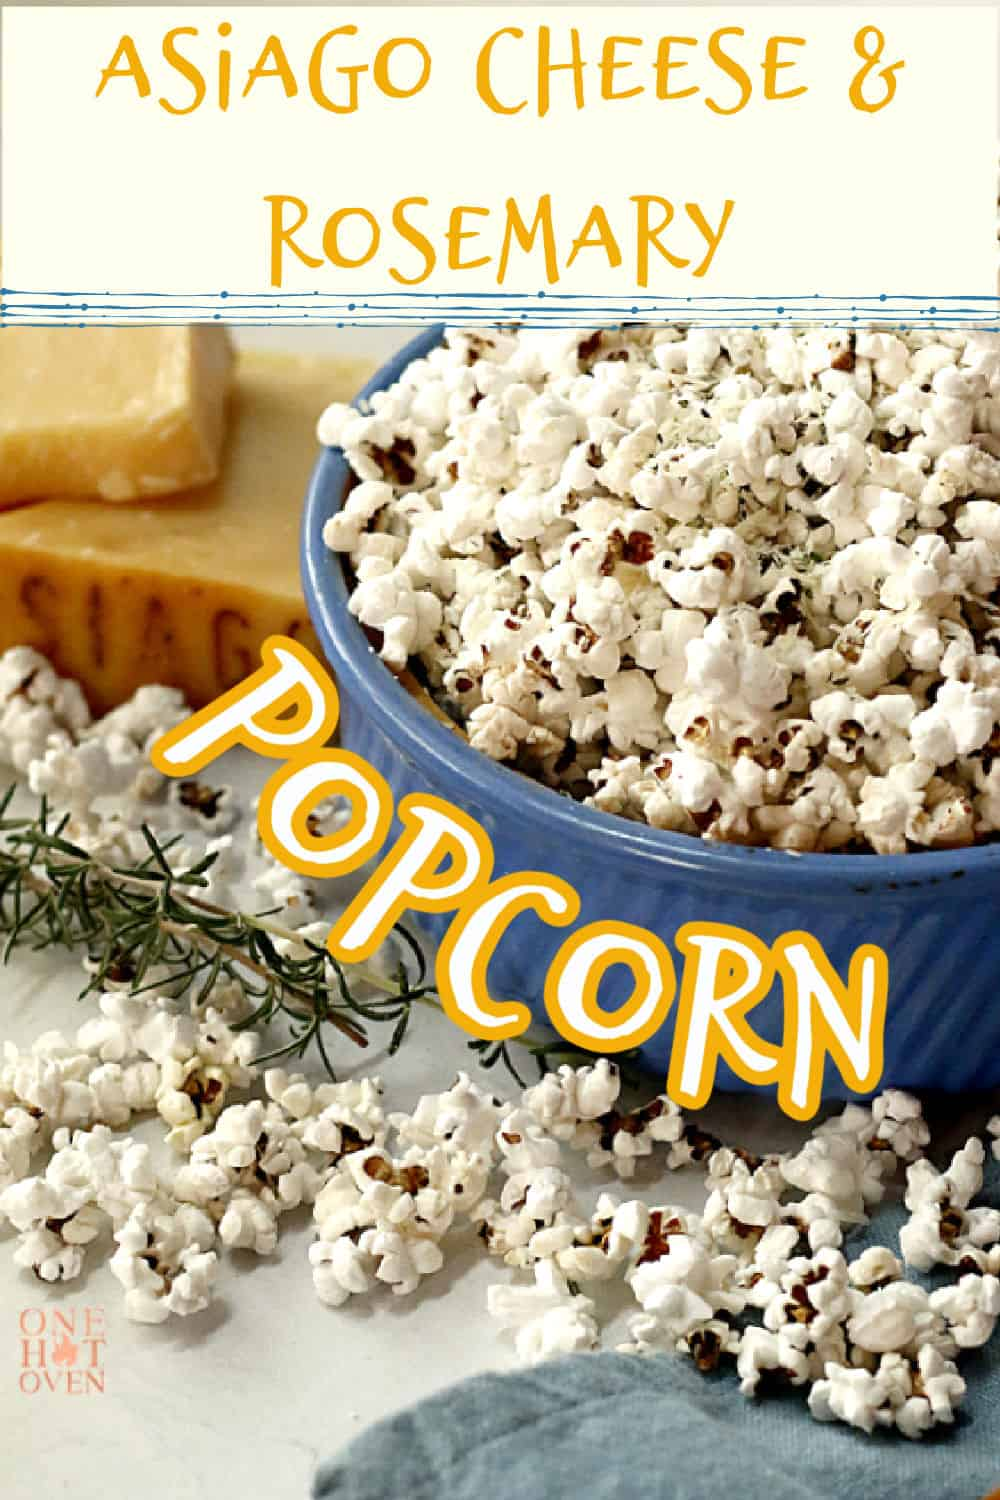 A pin image of popcorn in a blue bowl.